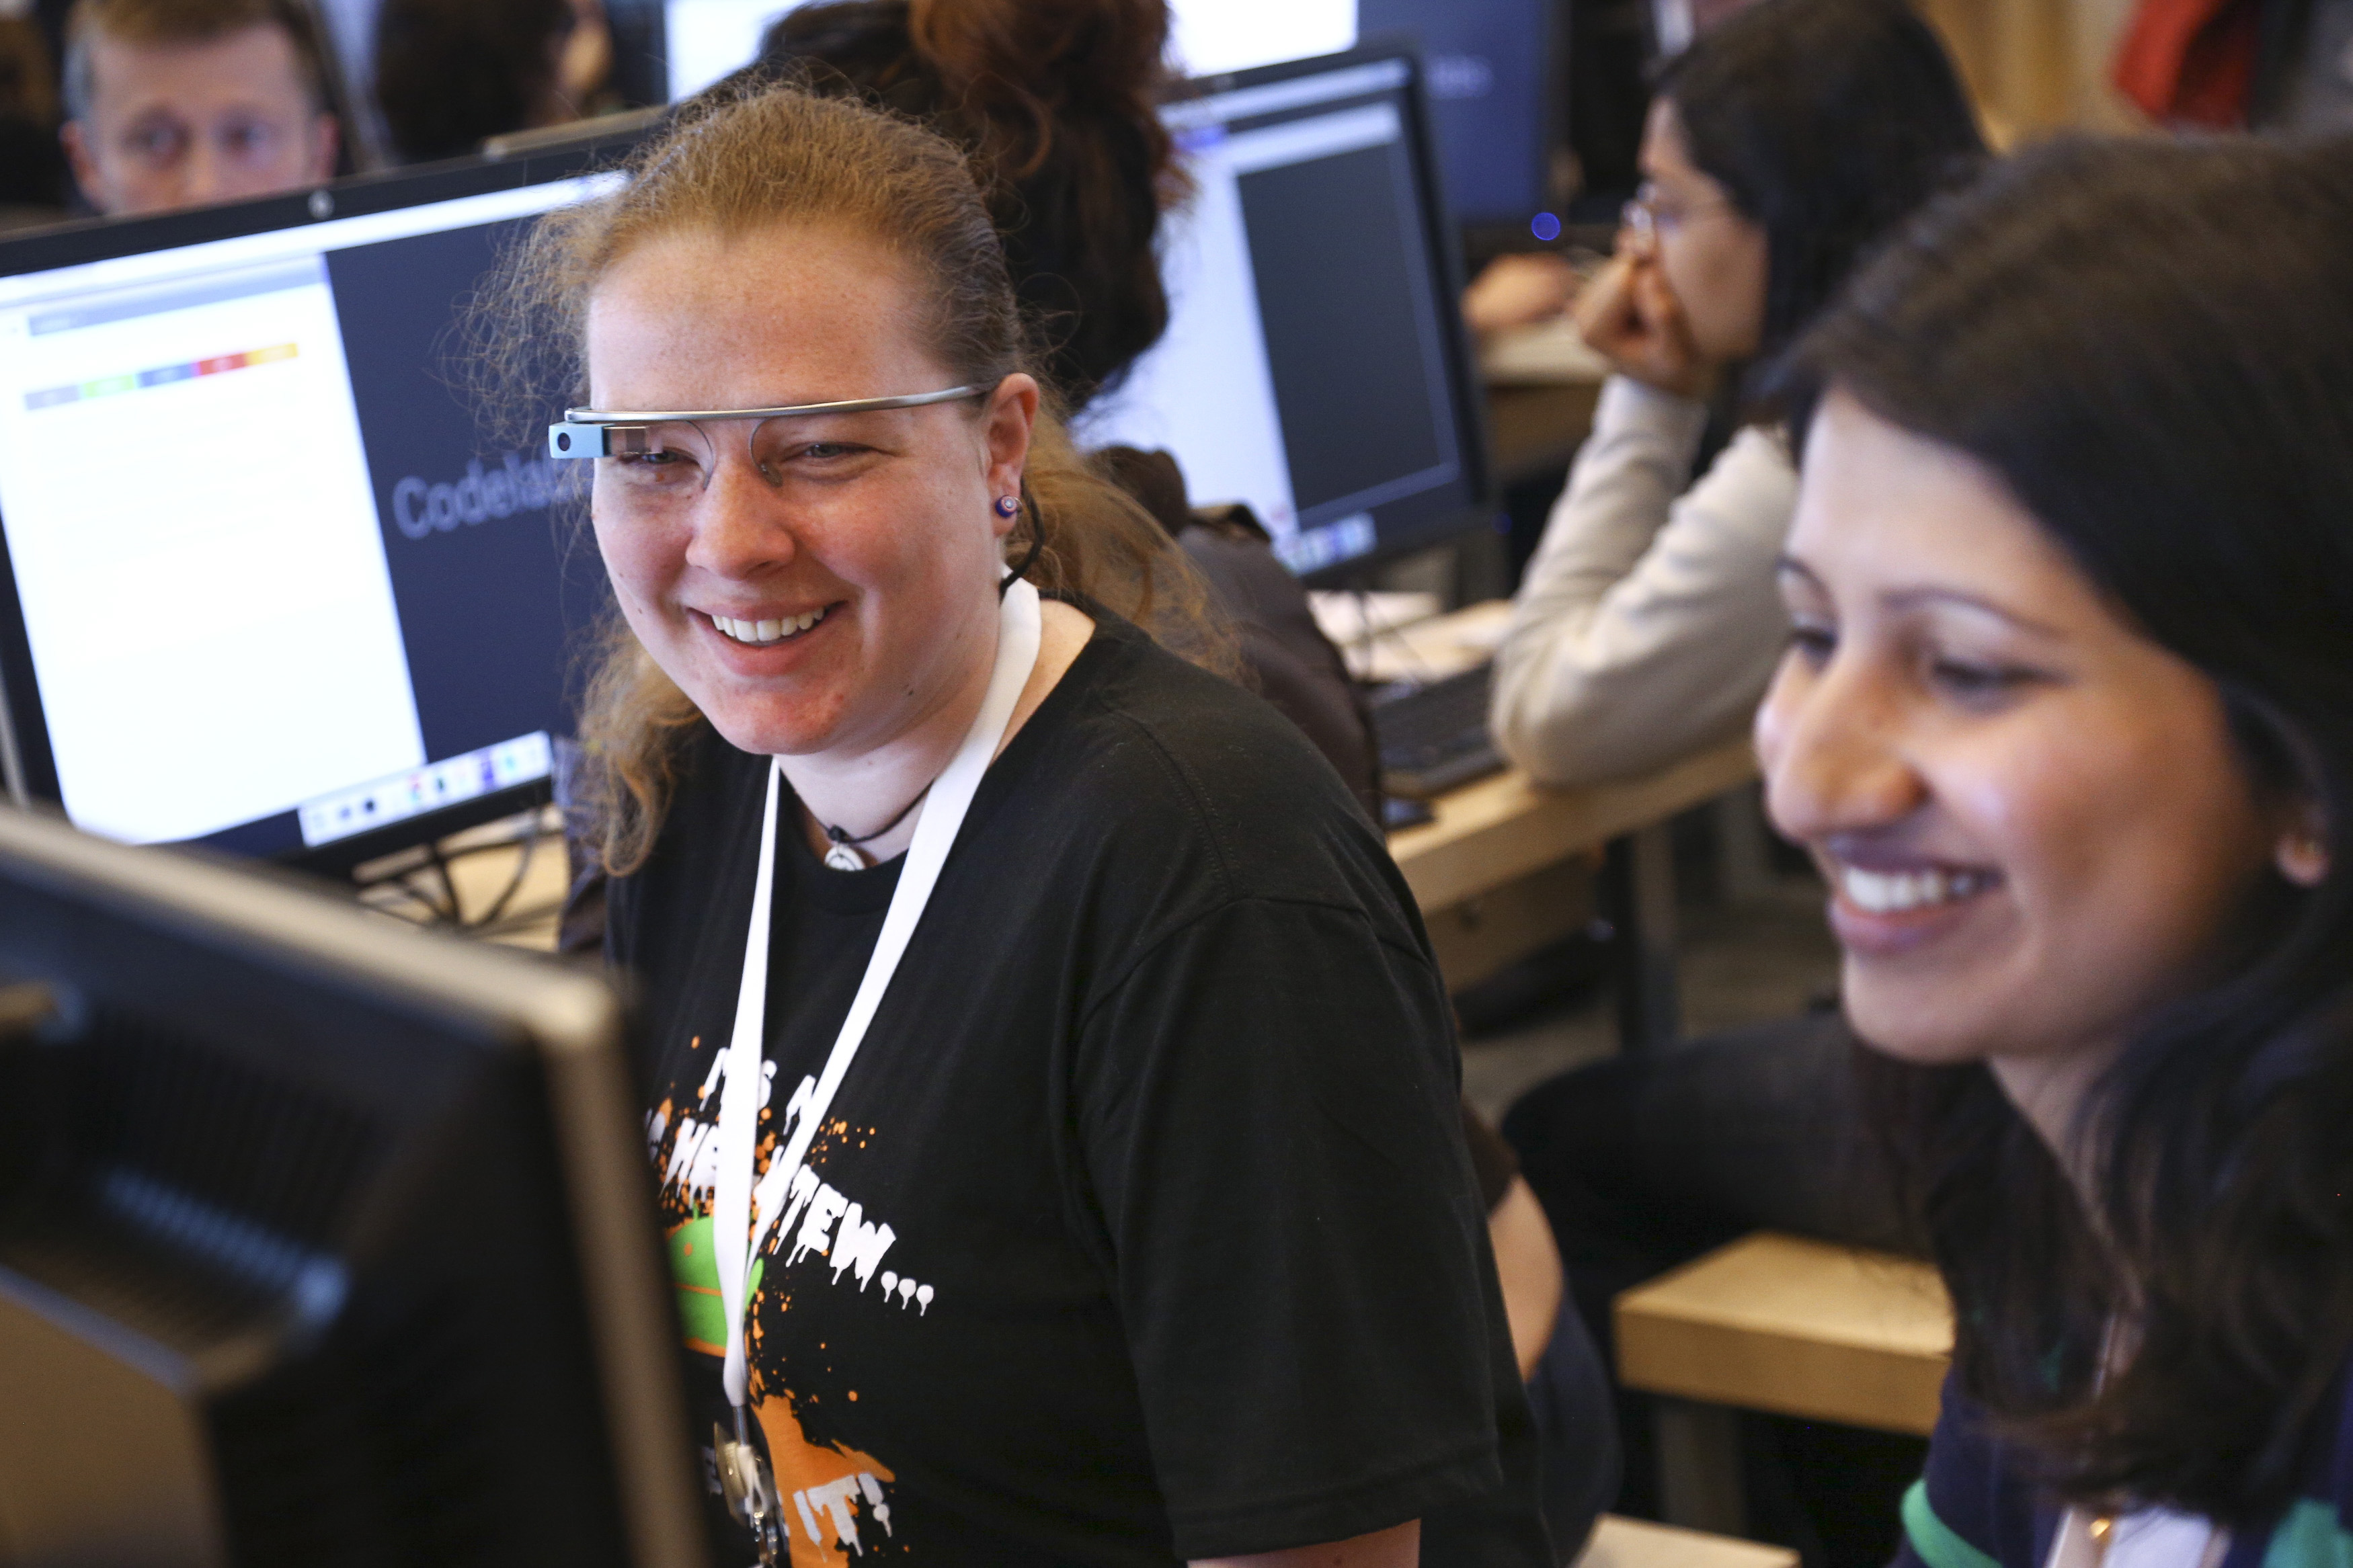 Rachel Wilson (L), of Rockville, Maryland, speaks with Yash Parbhu of Philadelphia, Pennsylvania while learning about the code for some of Google's new APIs at the Google I/O developers conference in San Francisco June 26, 2014. Women attendees constituted 20% of the conference's attendance this year, up from 8% last year. REUTERS/Elijah Nouvelage   (UNITED STATES - Tags: BUSINESS SCIENCE TECHNOLOGY) - GM1EA6R0IP701